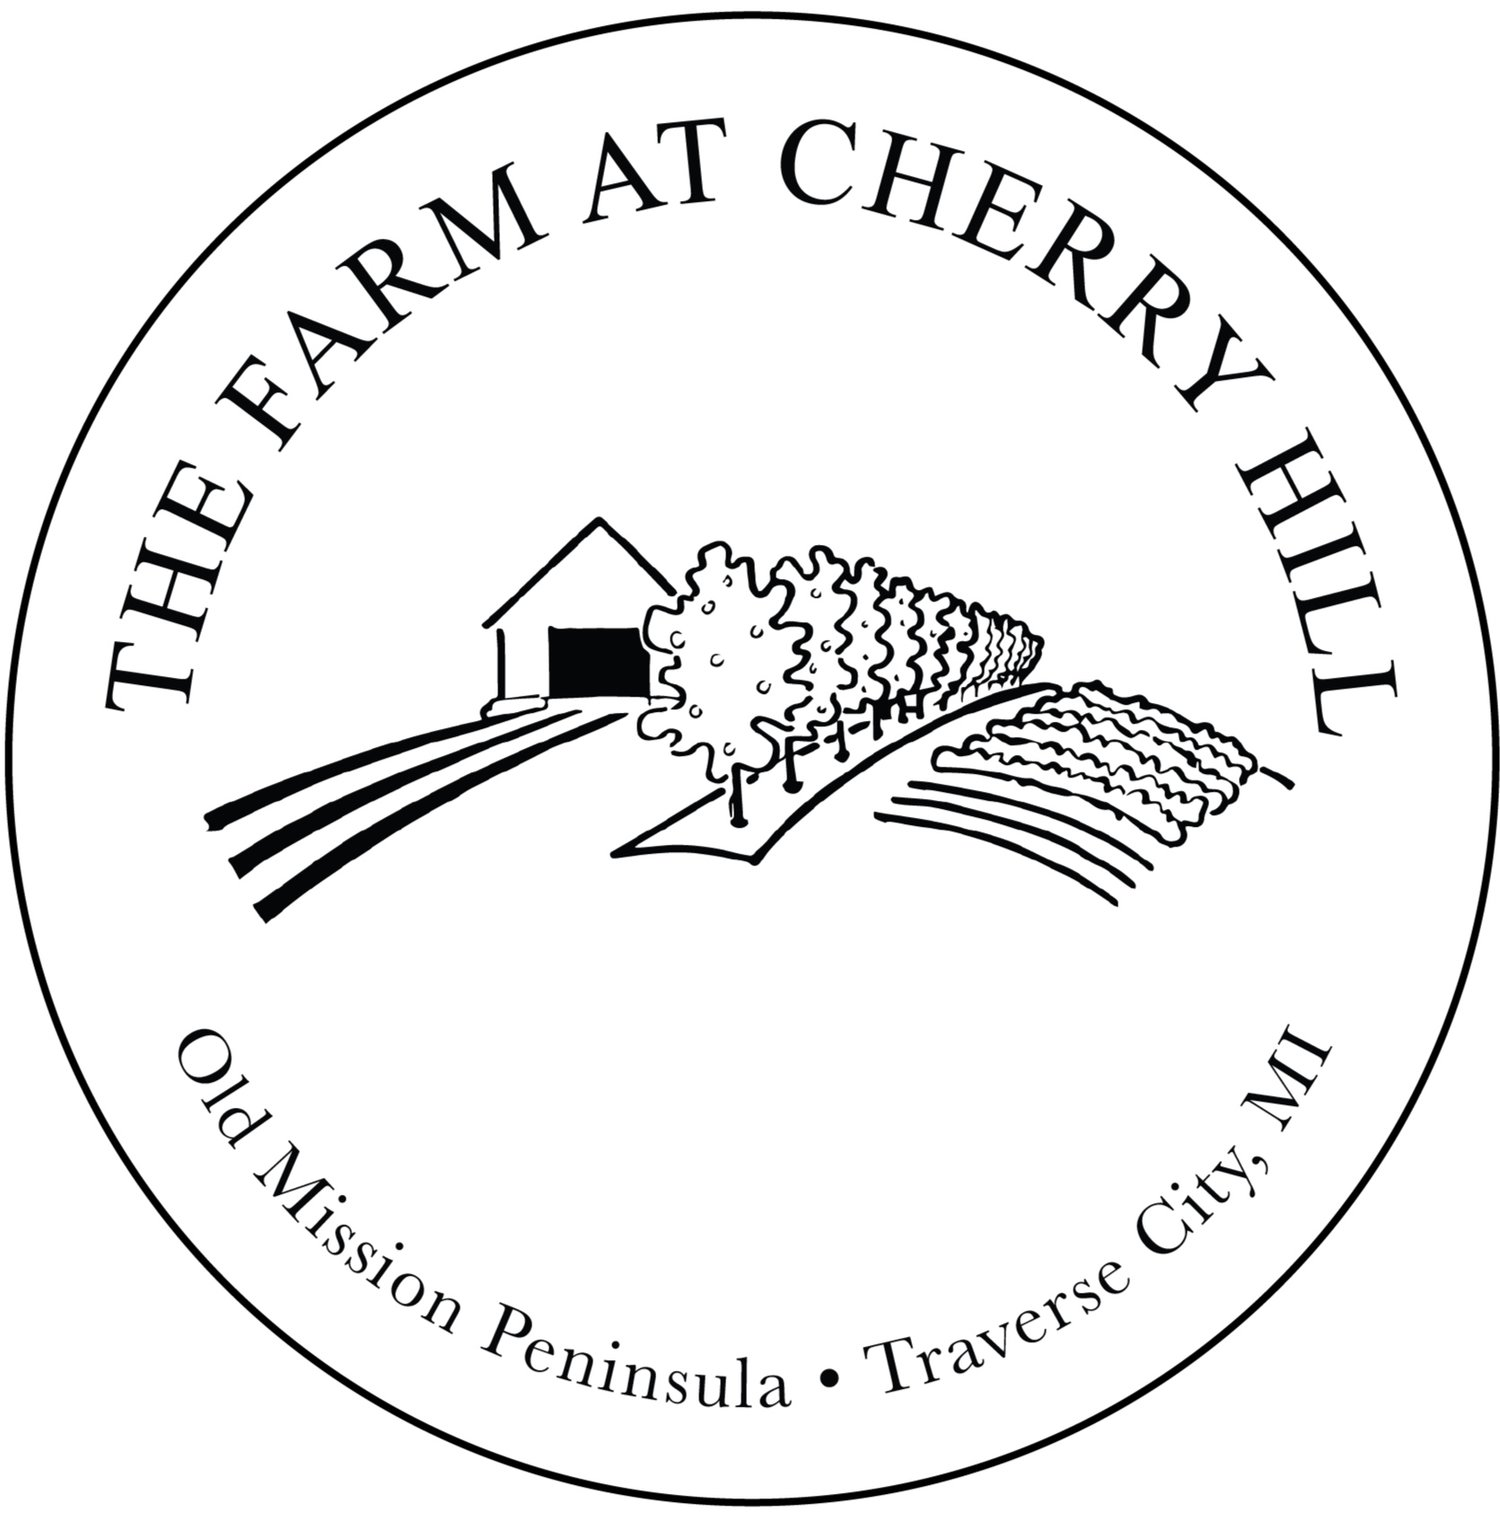 The Farm at Cherry Hill